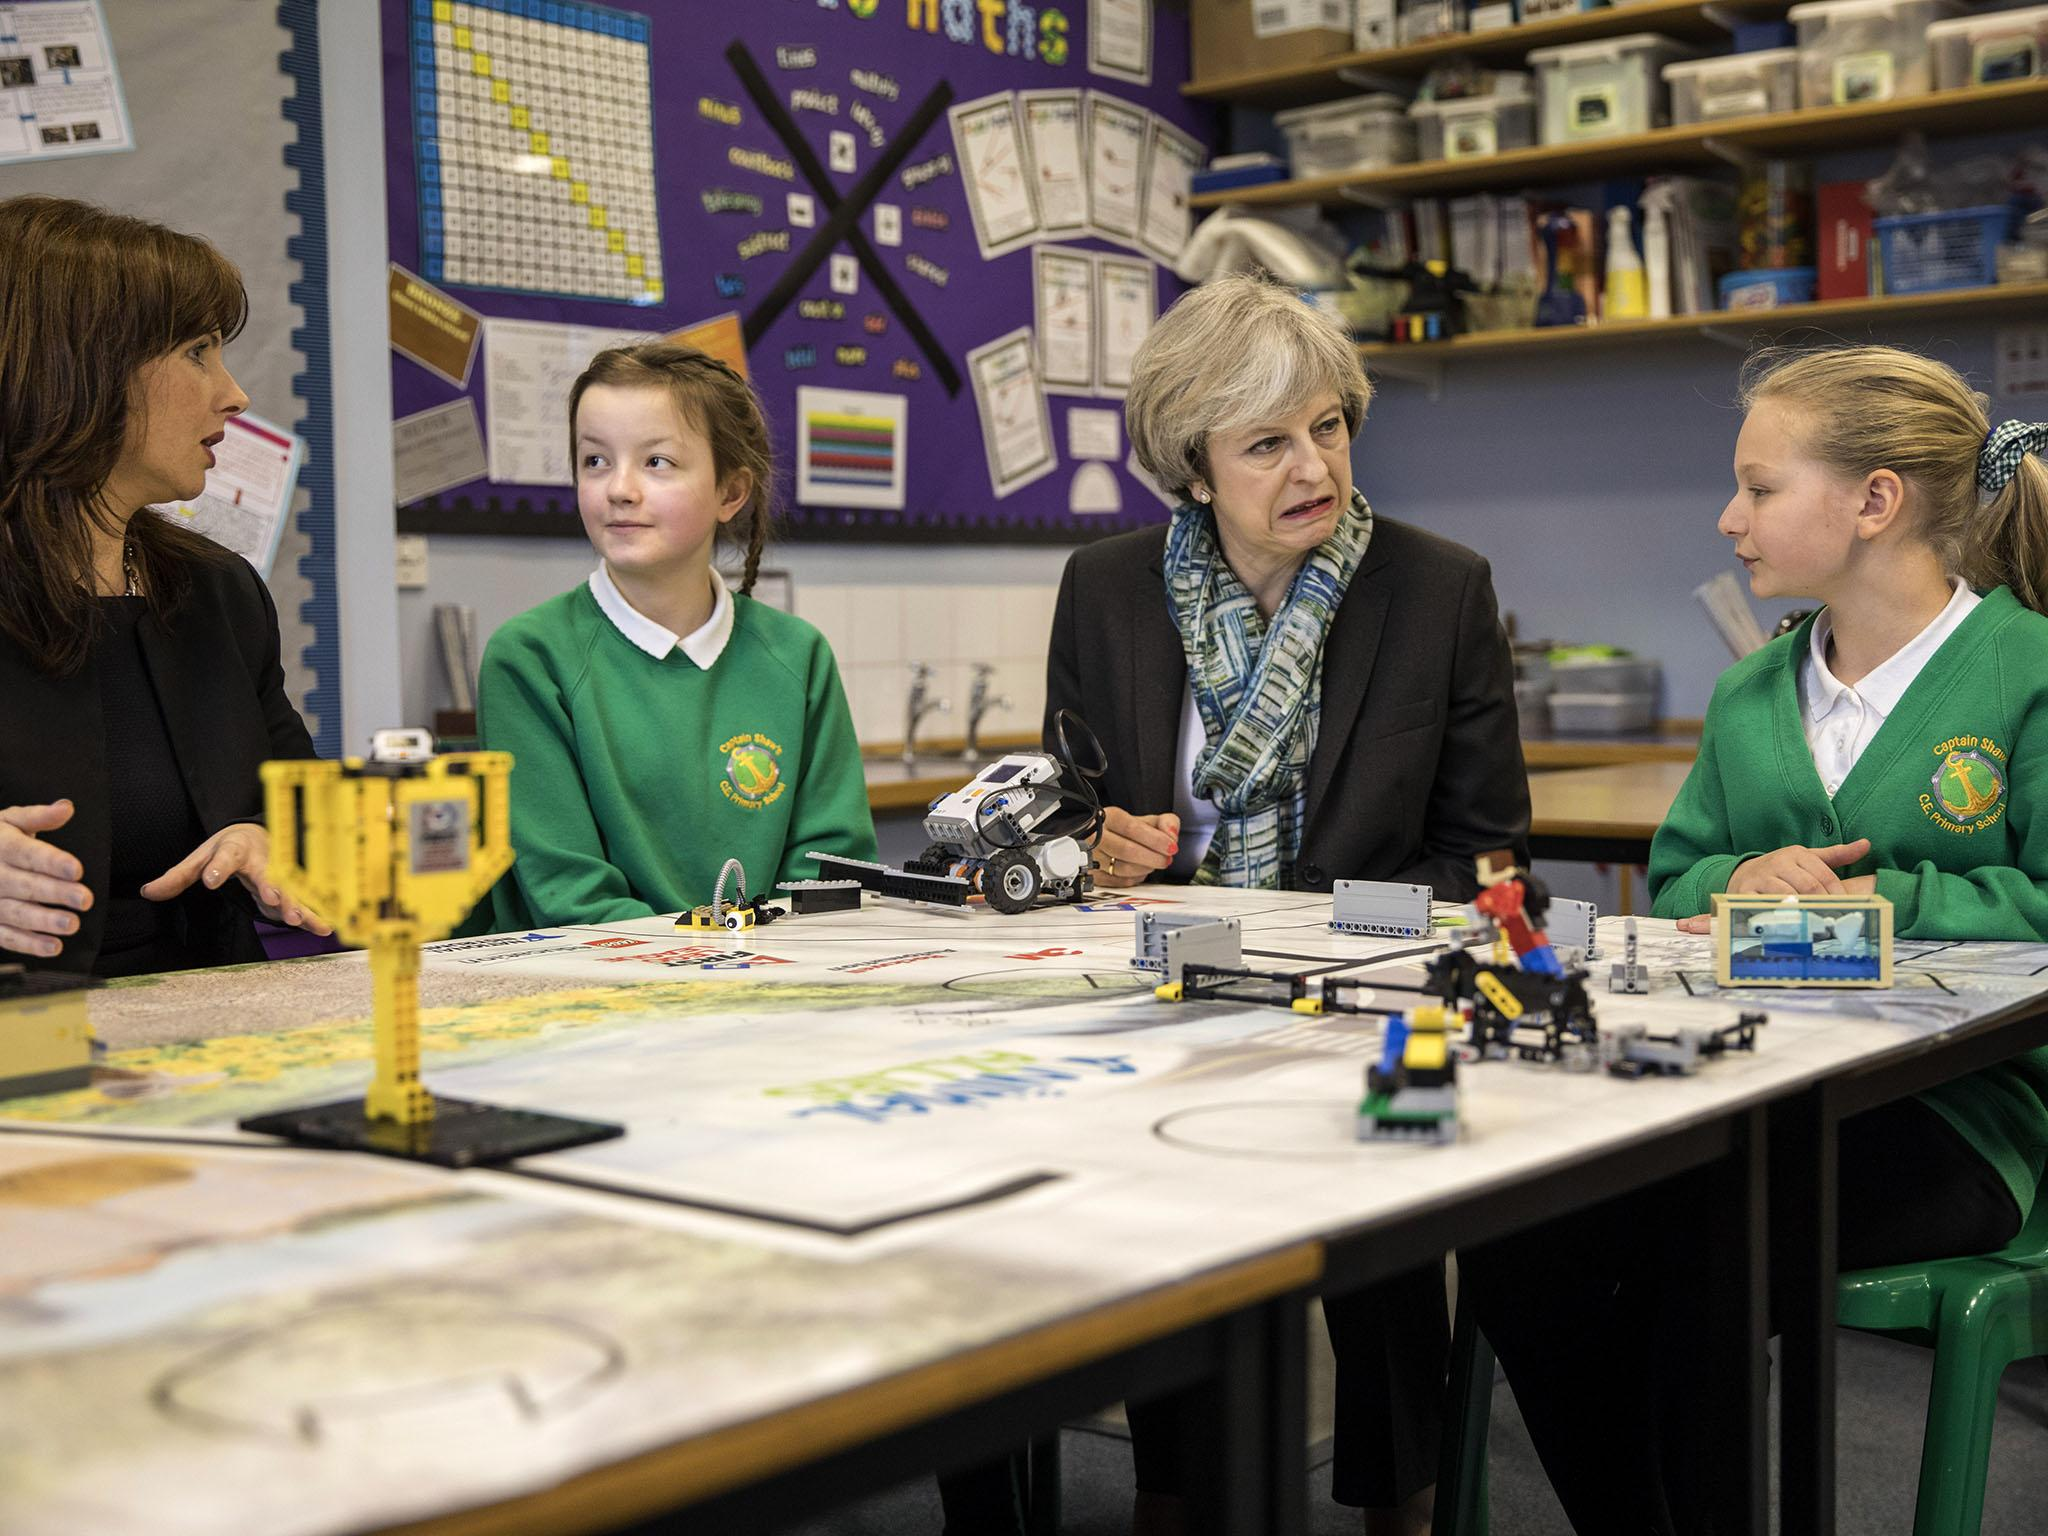 education funding from the government should not be cut Head teachers say it should end the government's insistence that funding had not been reduced  sixth form funding has been cut by 25% and local authority support is down by 55%.